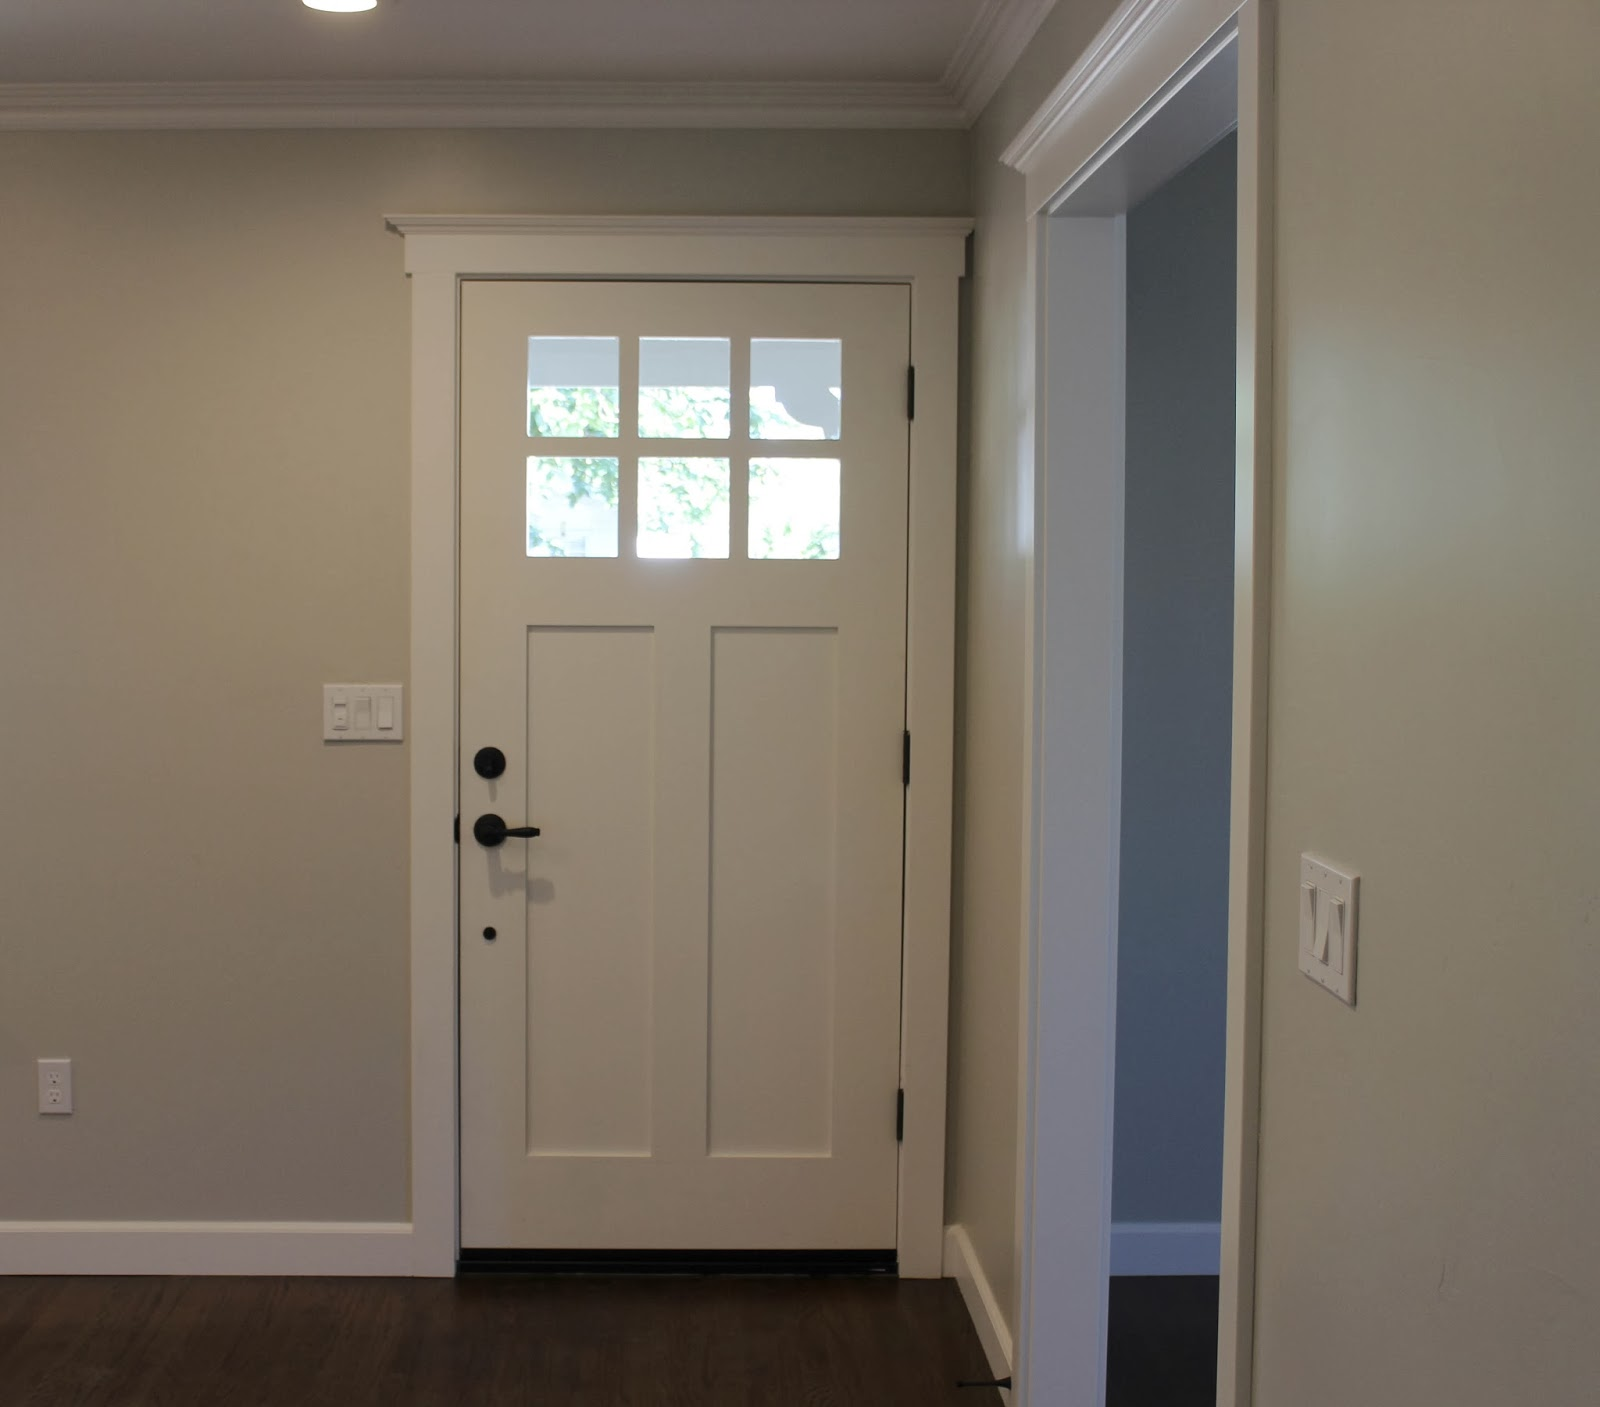 Traditional door casing styles vs contemporary door casing for Door moulding